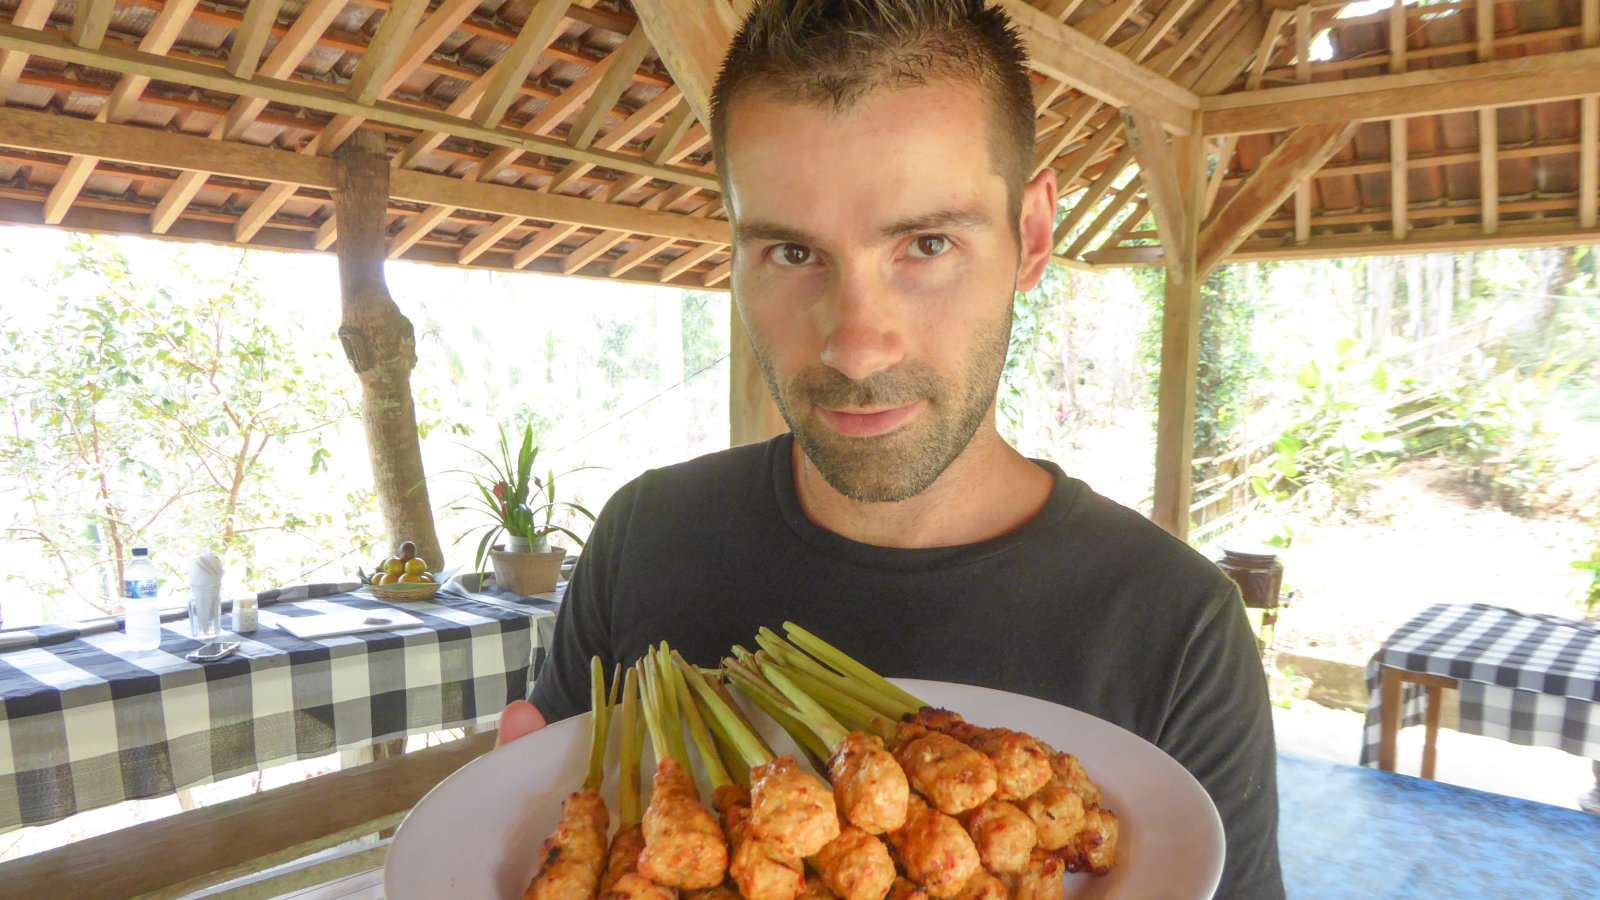 Sebastien proudly showing off his freshly made lemongrass chicken satay sticks